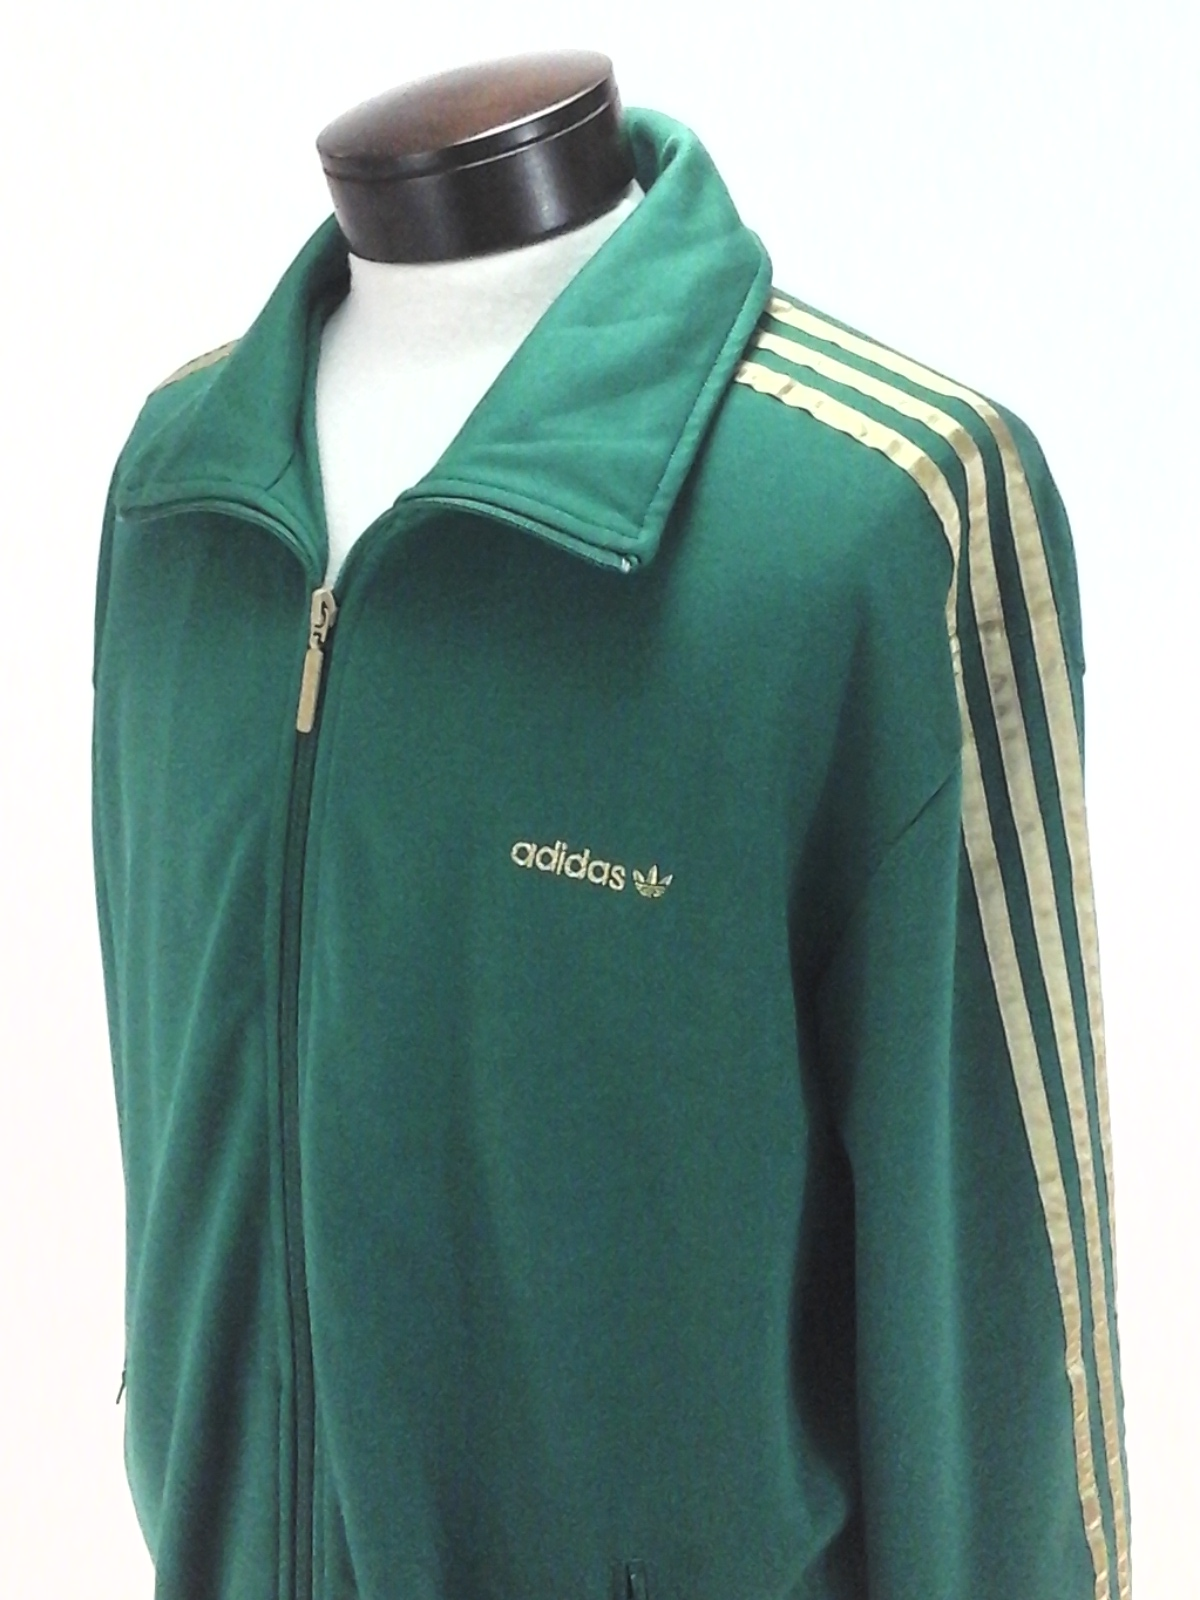 adidas originals polar fleece 1/4 zip track top